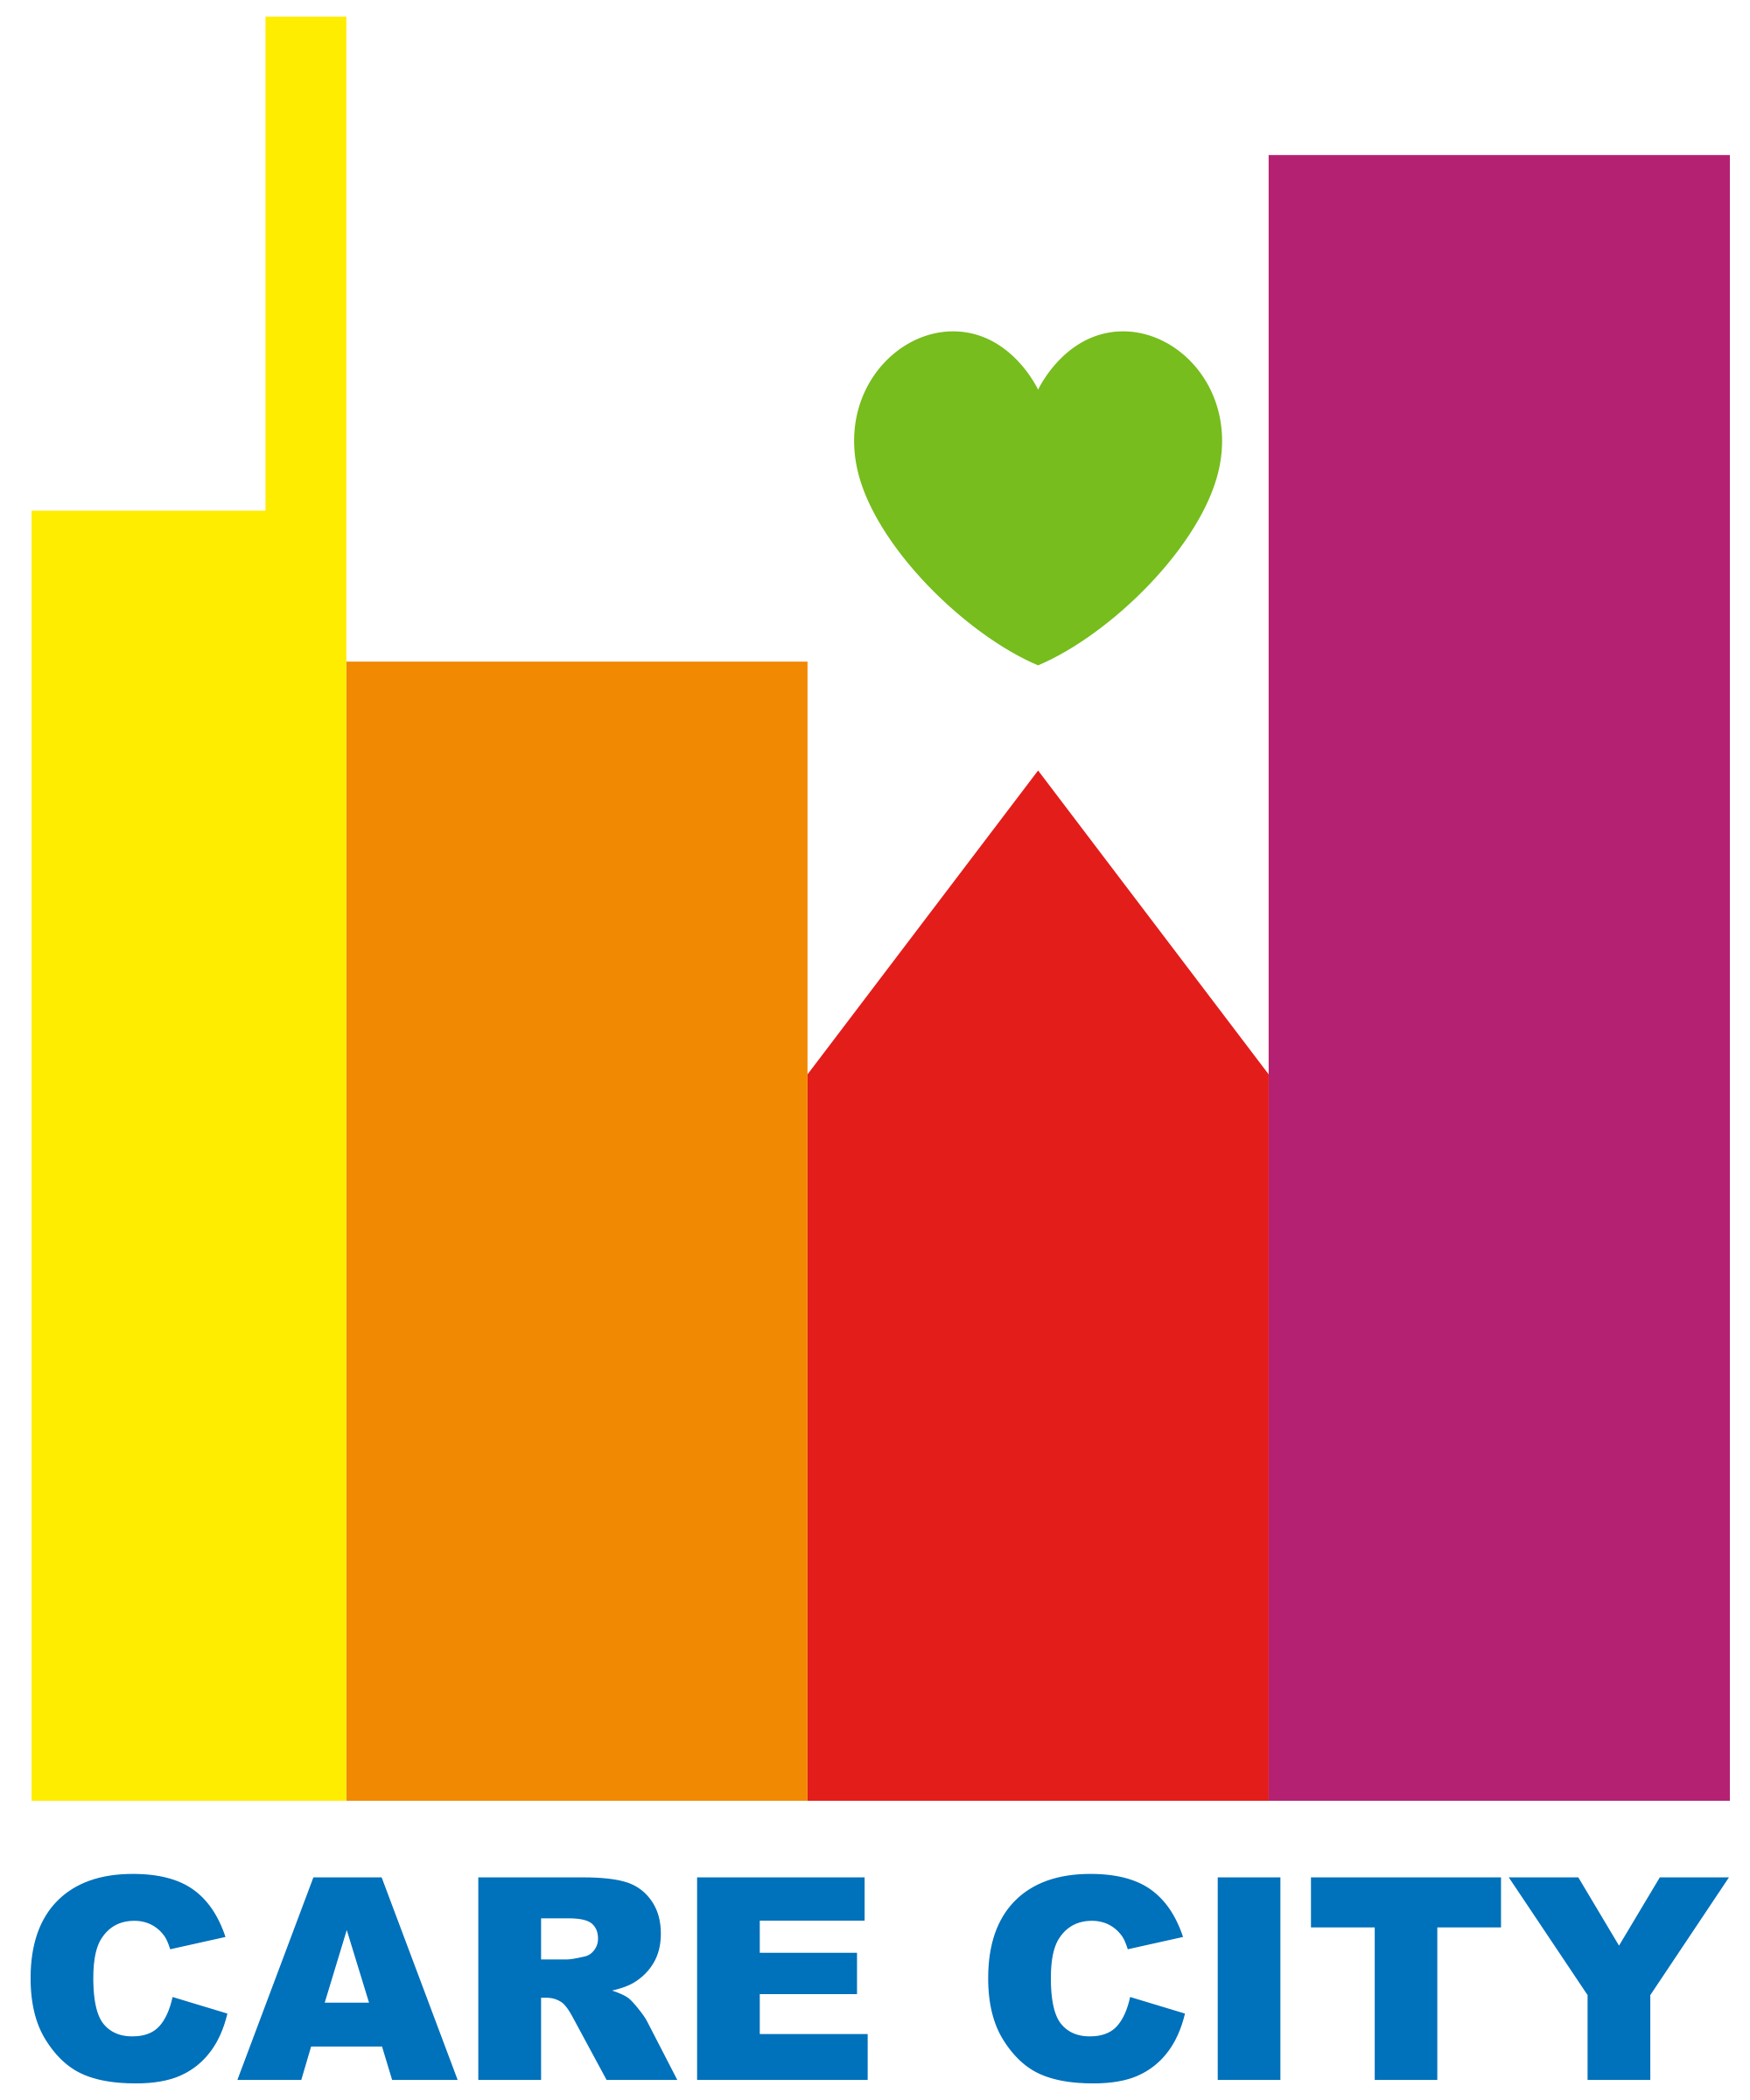 care-city-logo-master.png